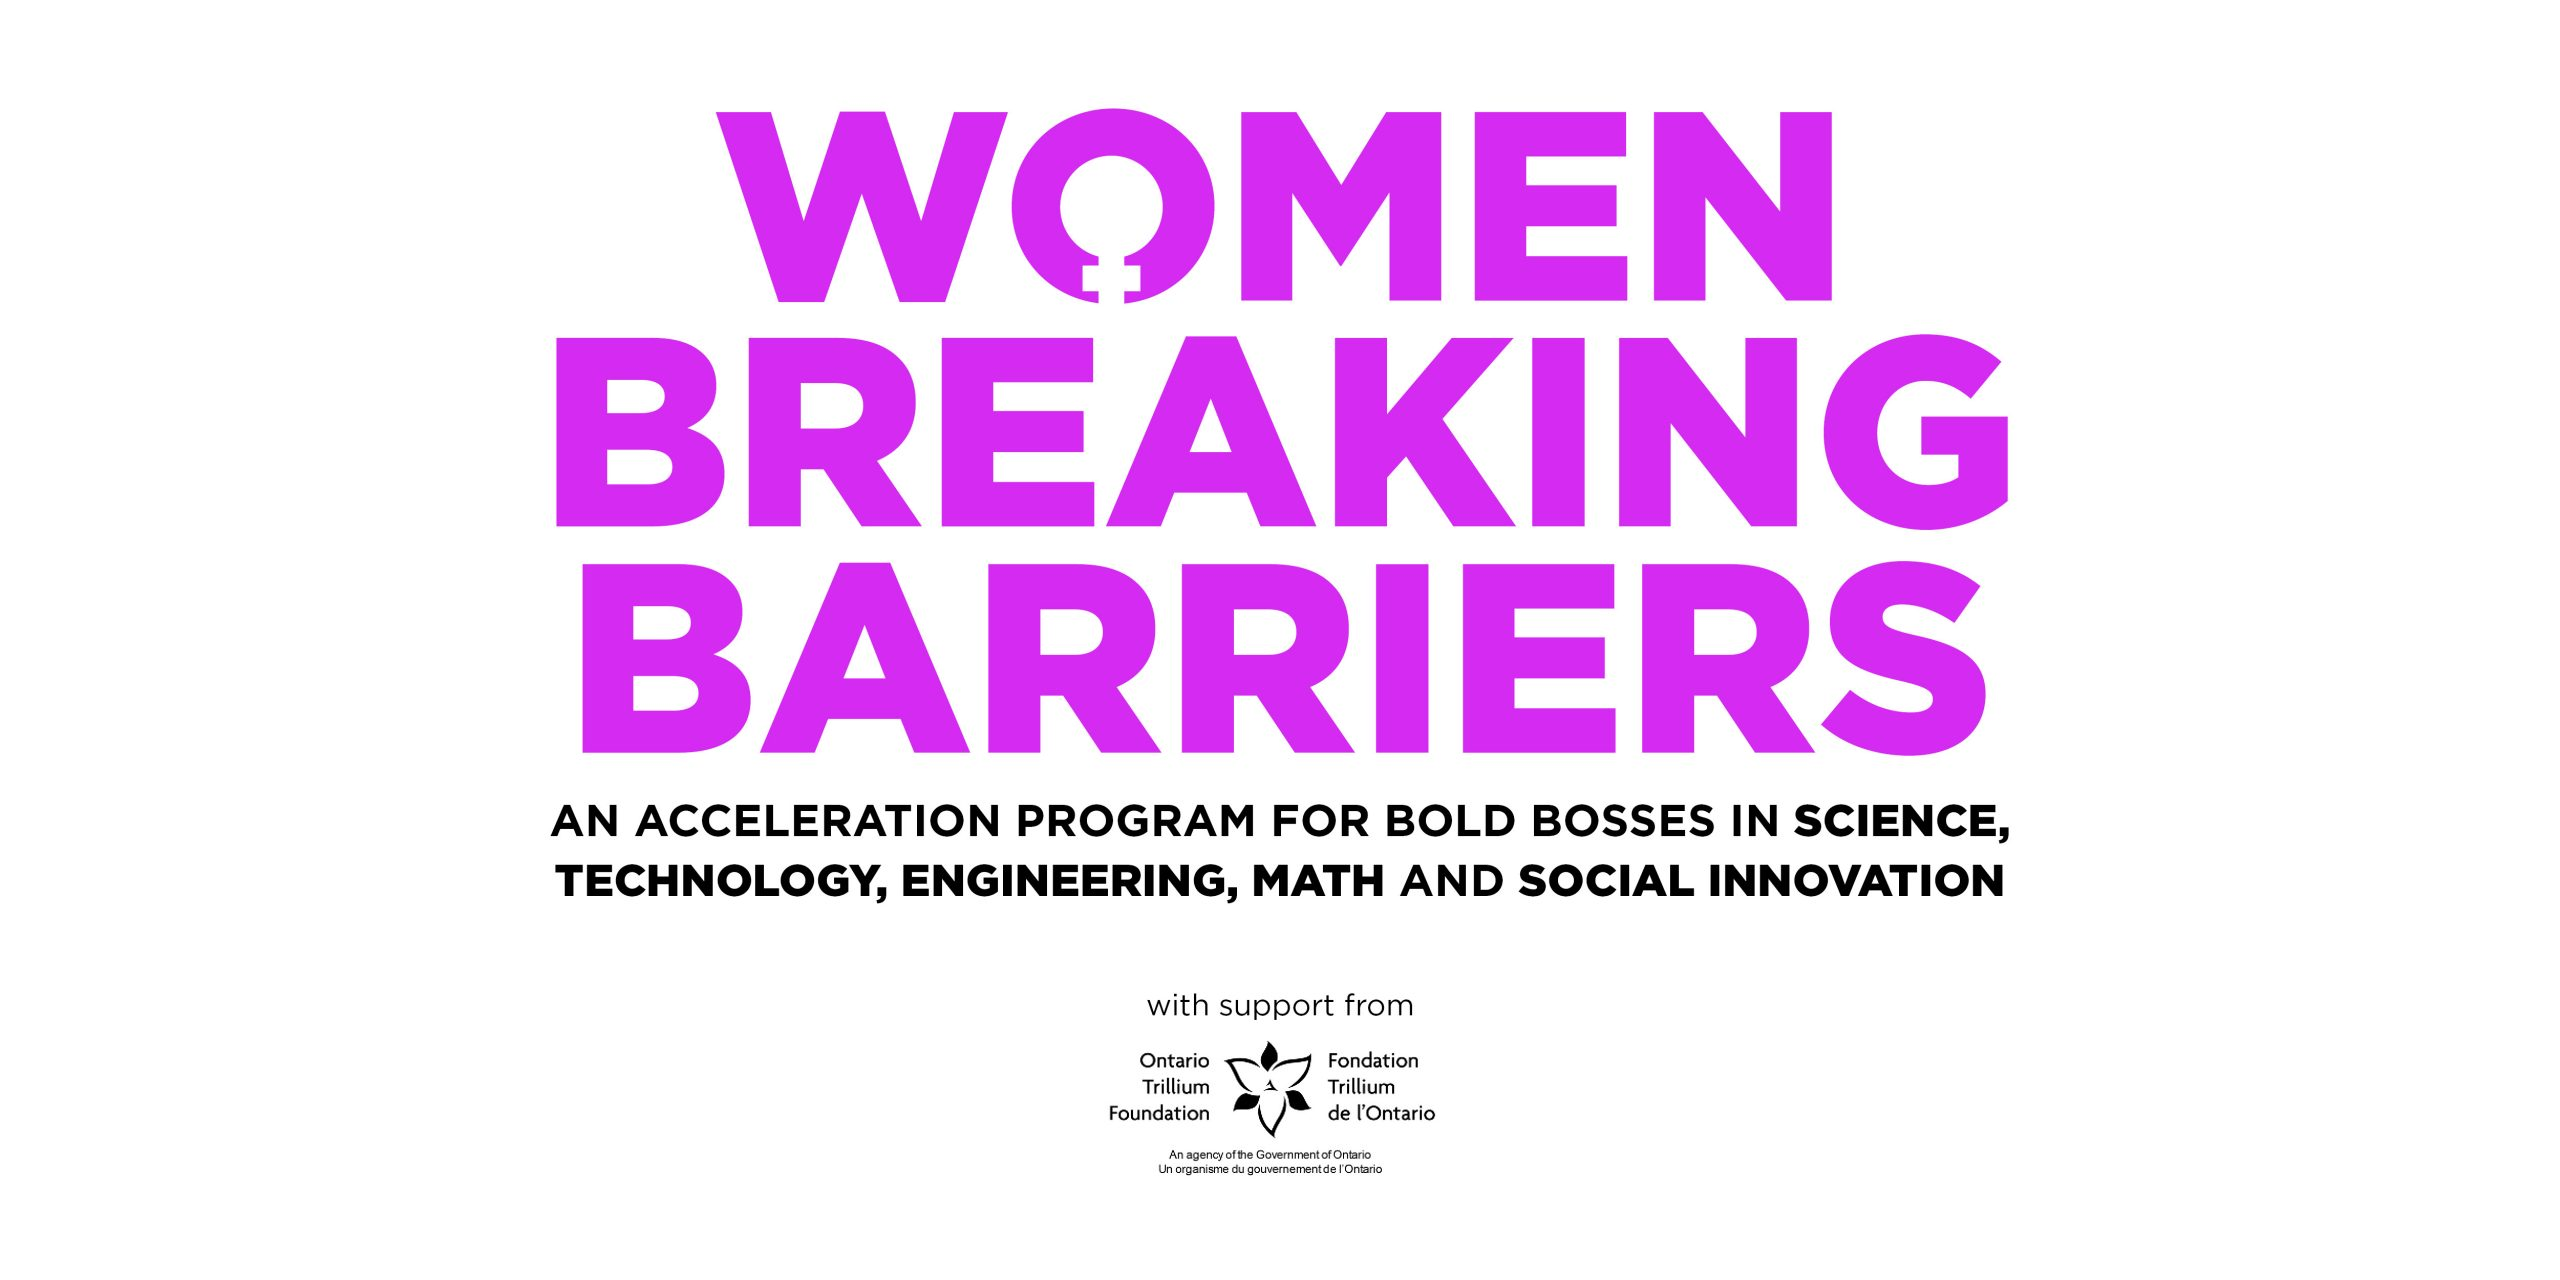 Innovation Cluster Launches Women Breaking Barriers Accelerator Program to Support Women Entrepreneurs in STEM and Social Innovation